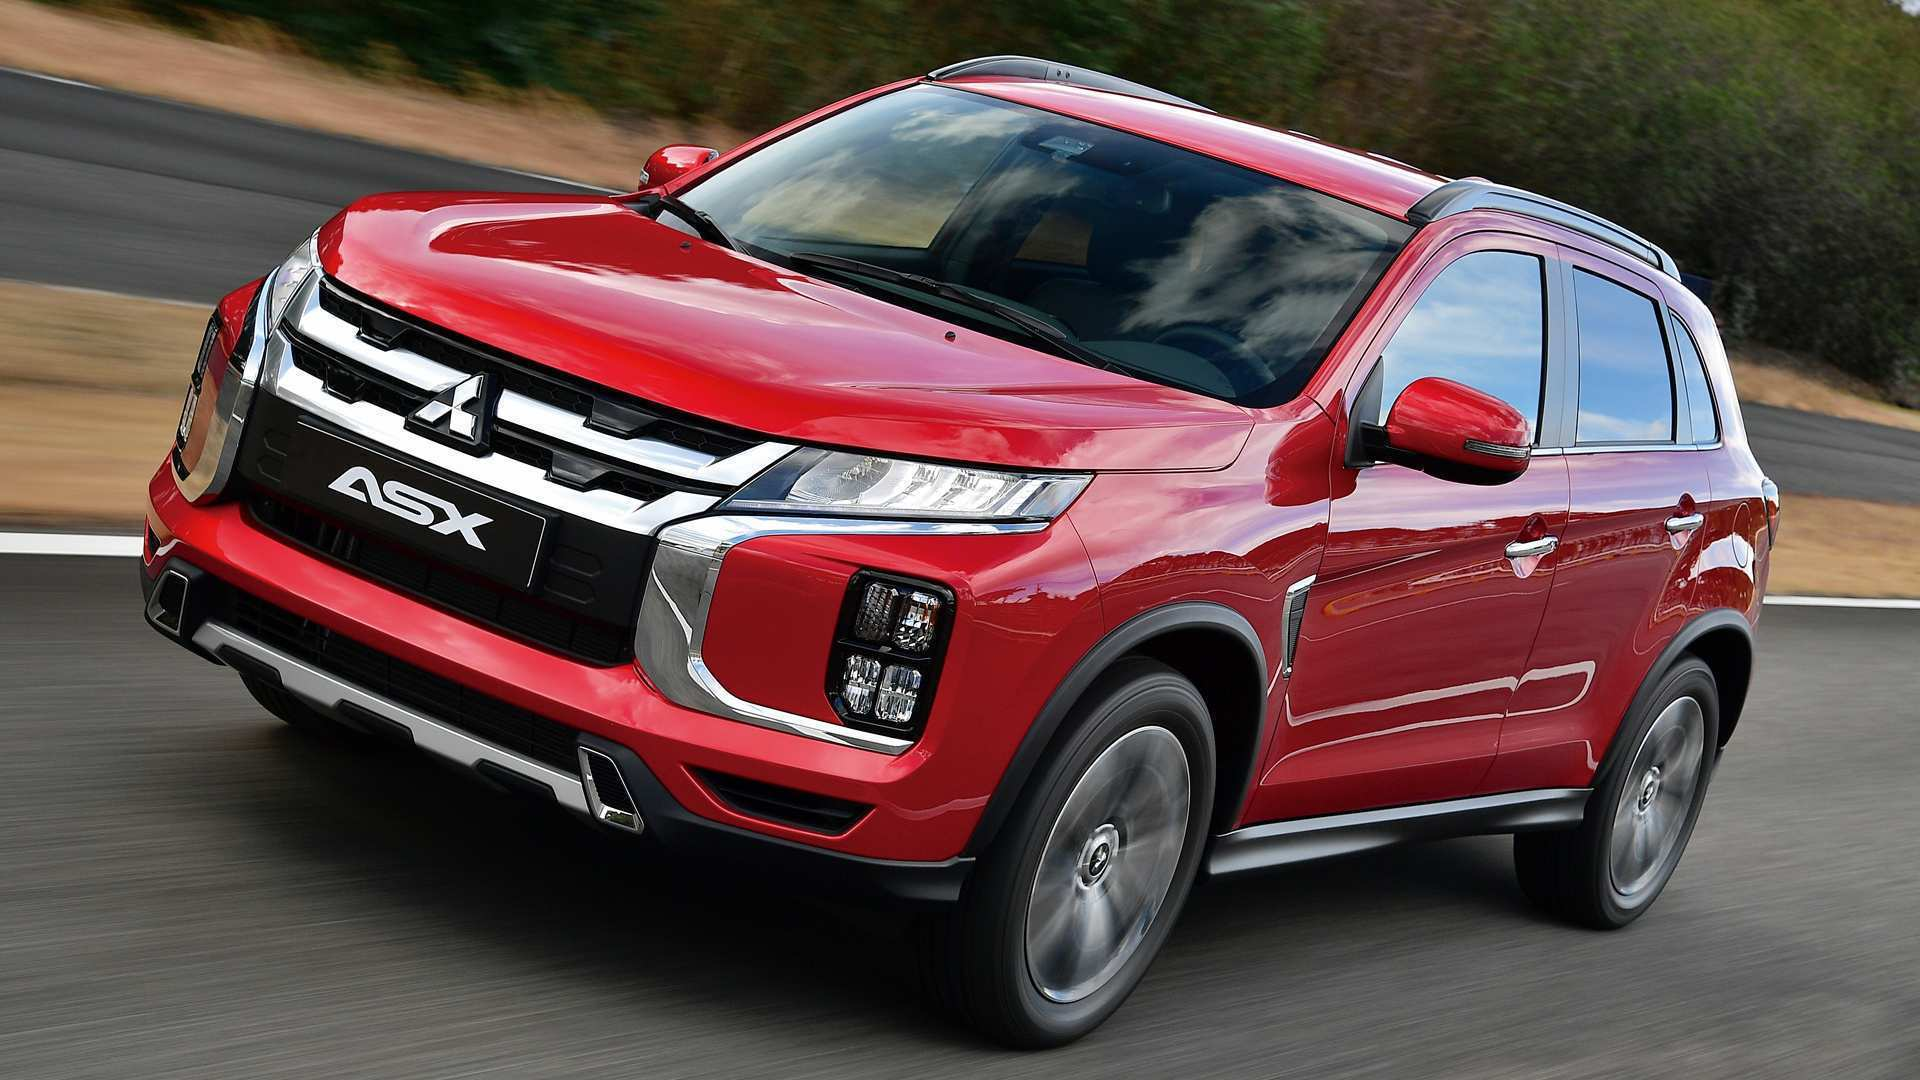 65 The Best 2019 Mitsubishi Asx Release Date And Concept